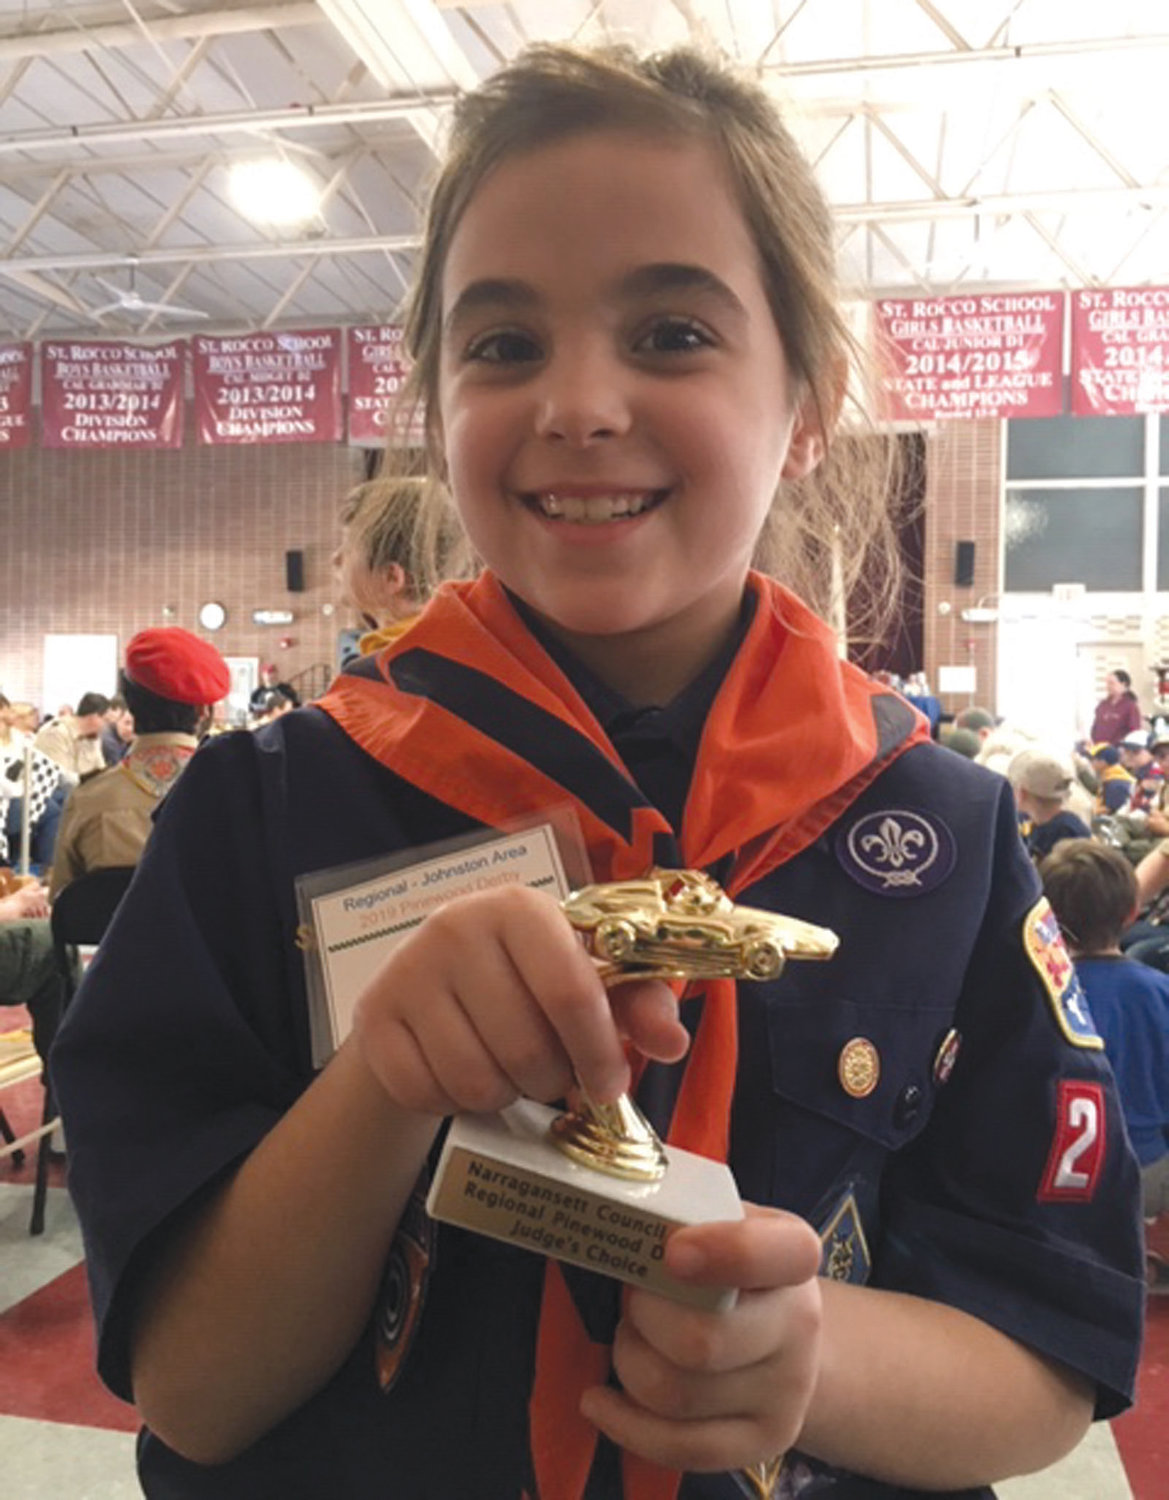 NOTHING BUT HAPPY: Johnston's Ali LaFazia proudly holds her award for Judge's Choice in design during the Pinewood Derby Regionals in March. Ali, via her mother Sheri, said her favorite aspects of Boy Scouts include hiking, fishing and camping.